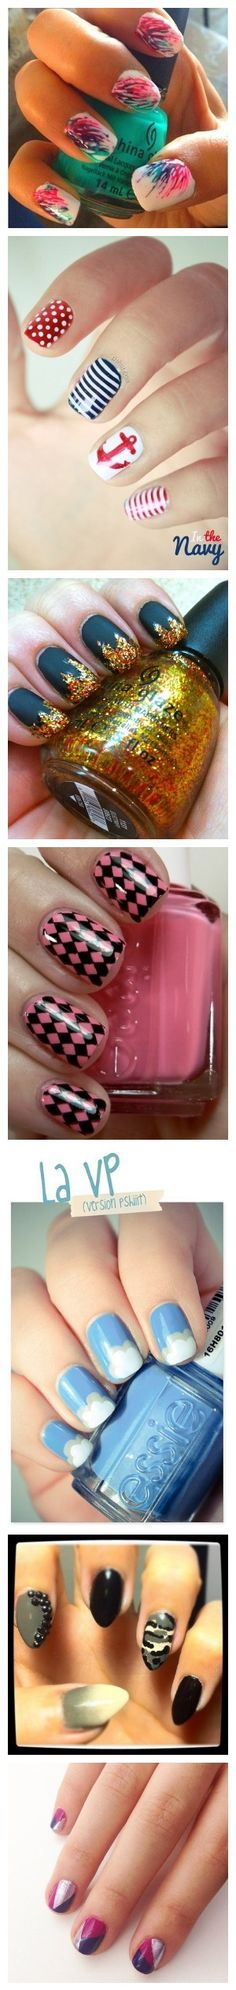 Nail Art Designs - Get Creative